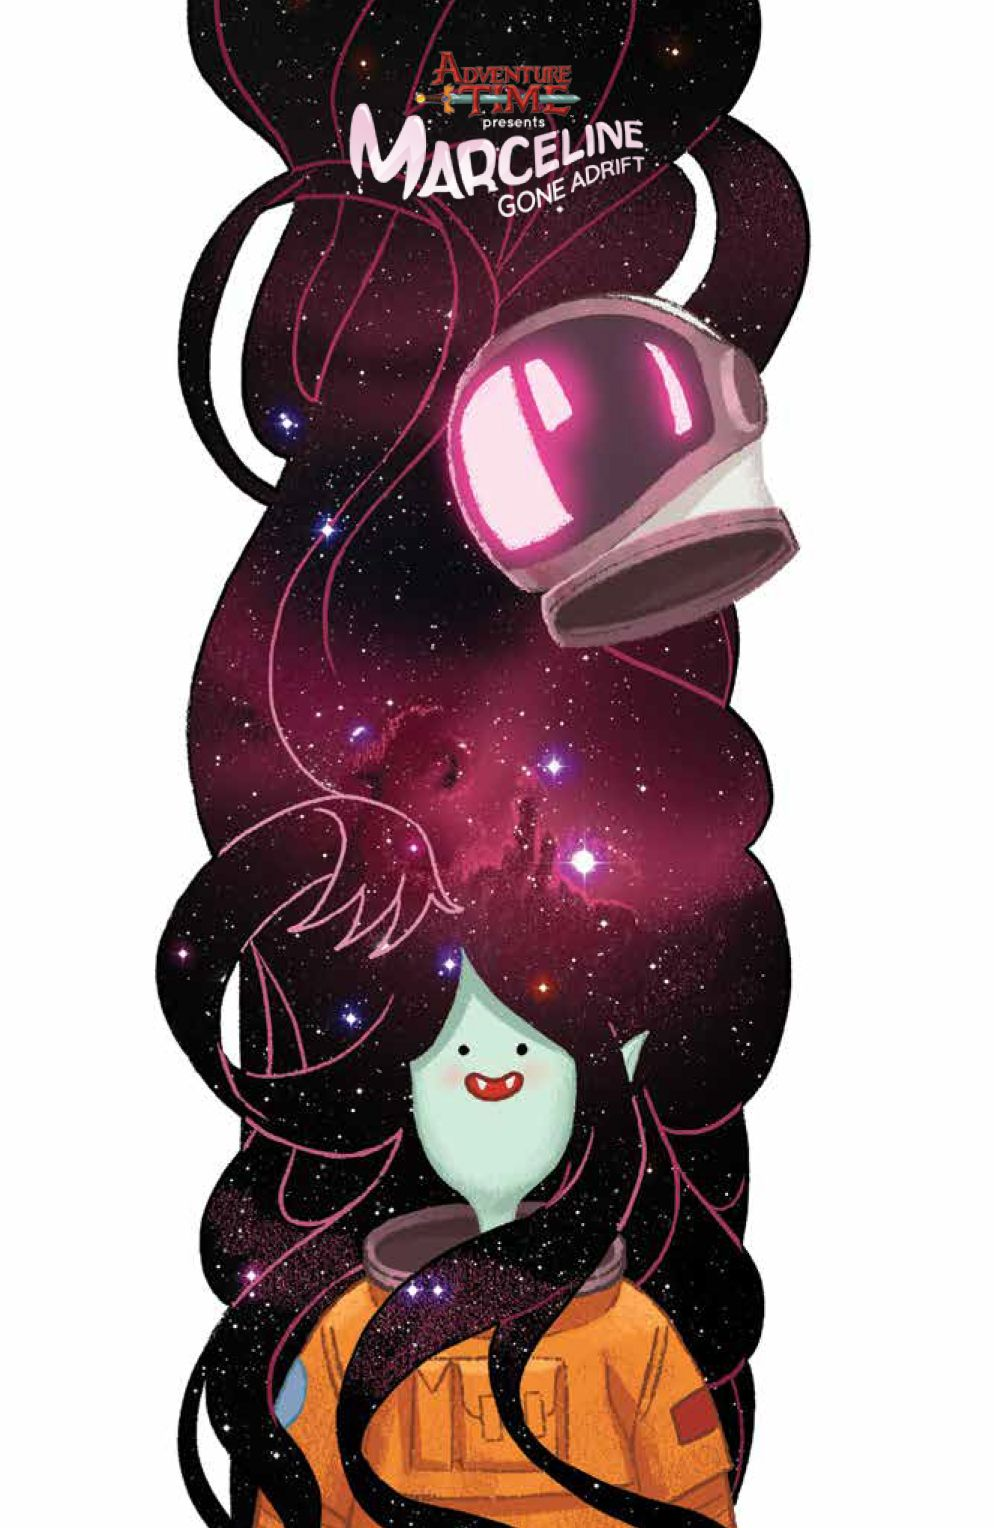 Adventure Time Marceline Gone Adrift 06